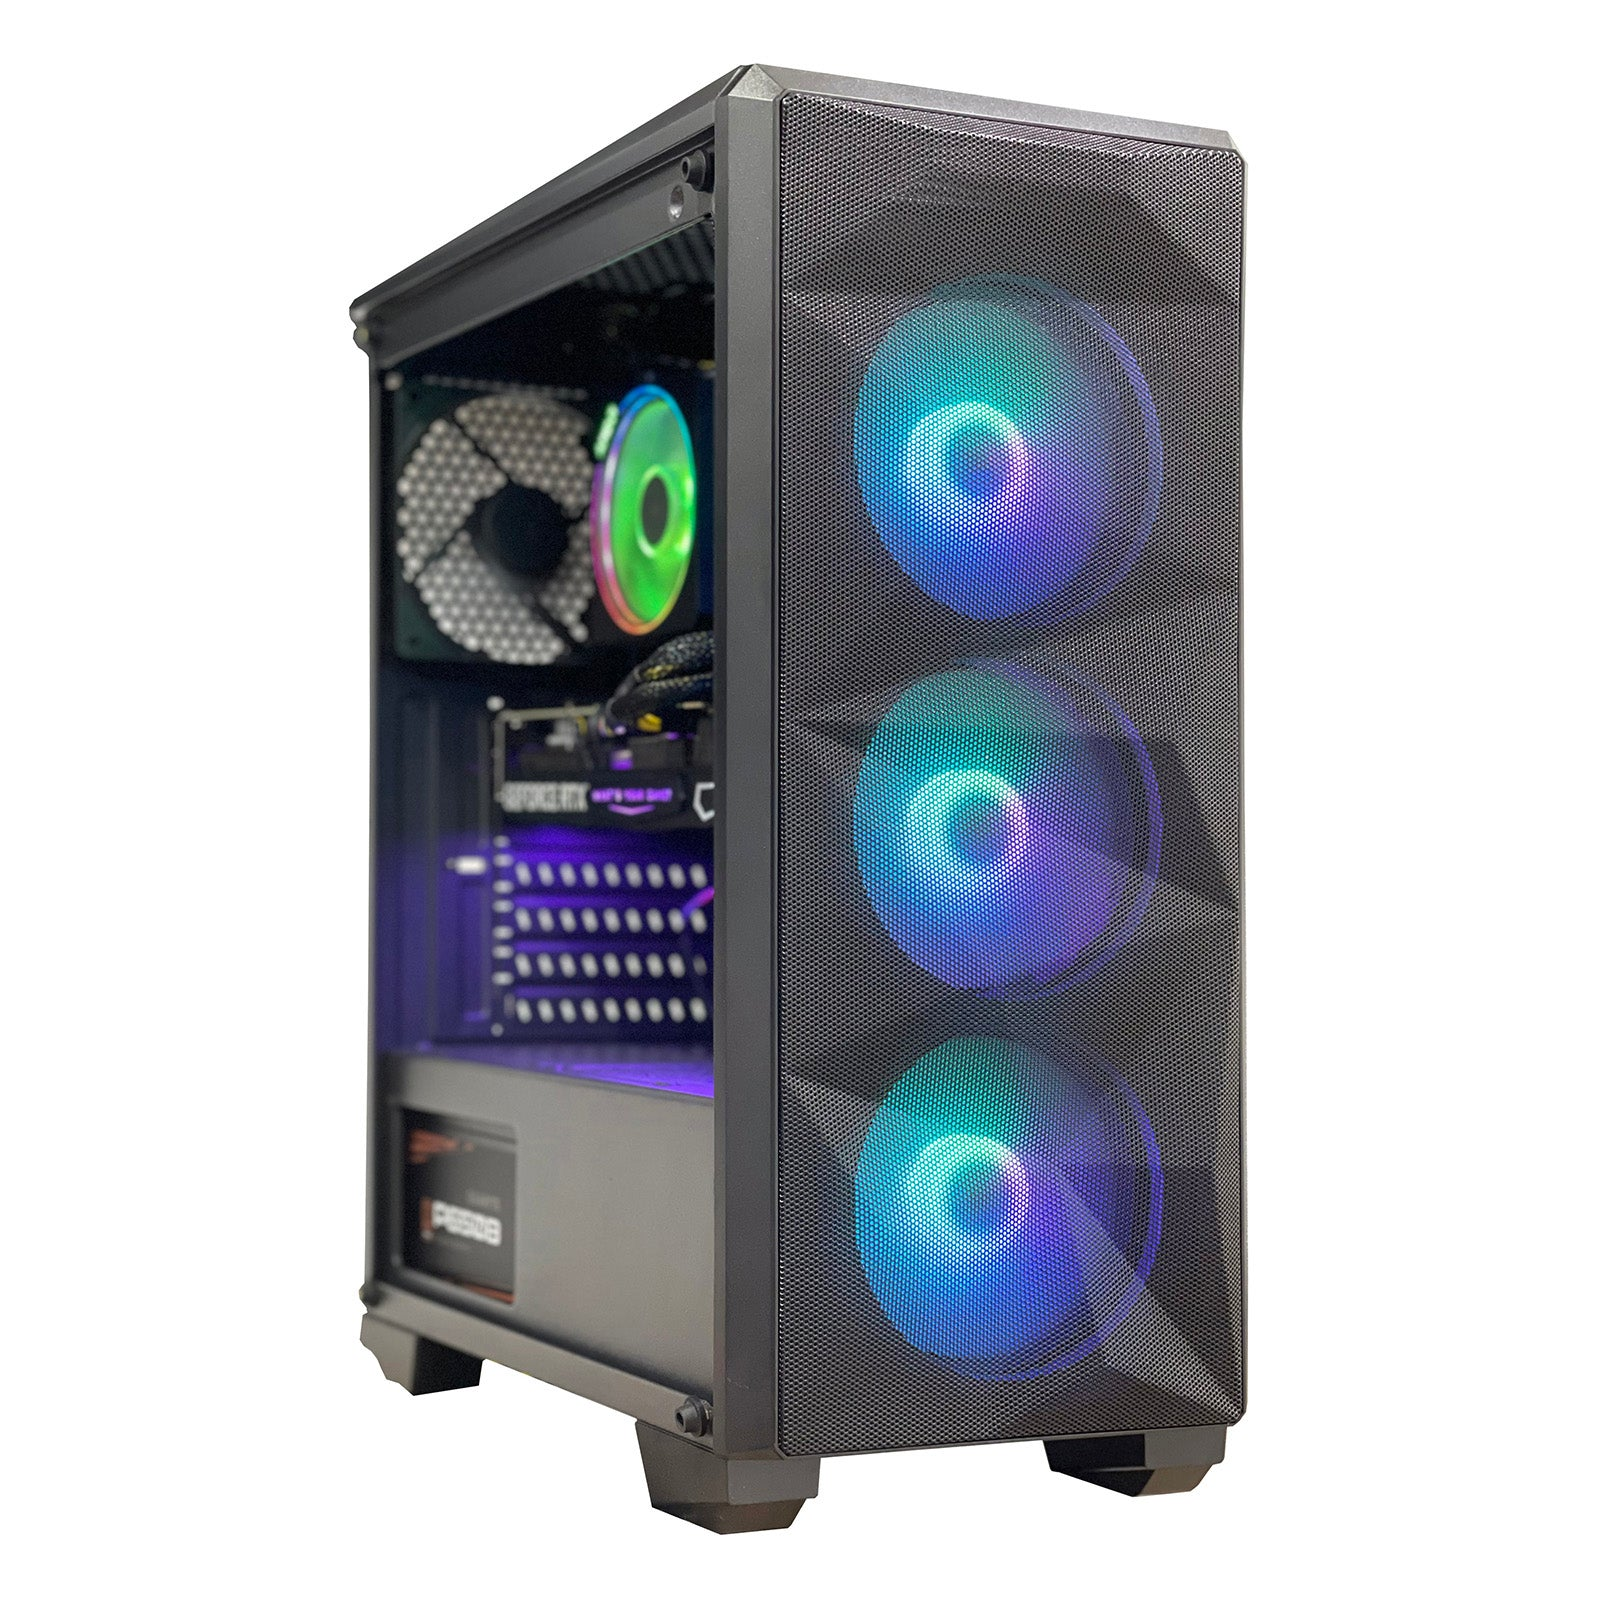 Intel Core i7 10700F | RTX 3070 8GB Gaming Desktop PC